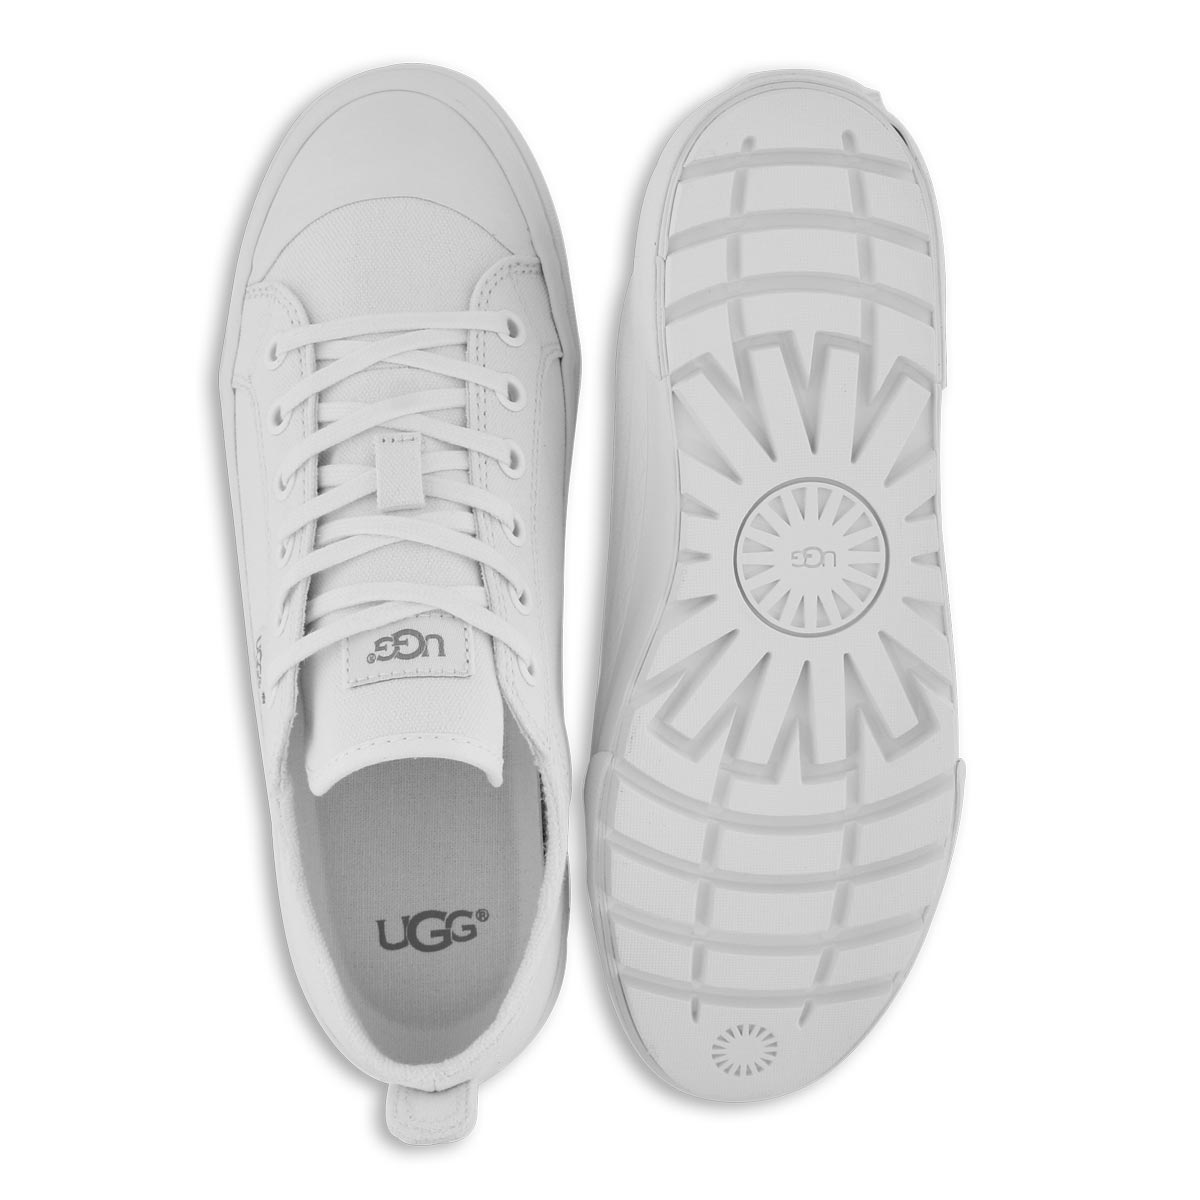 Lds Aries white casual sneaker